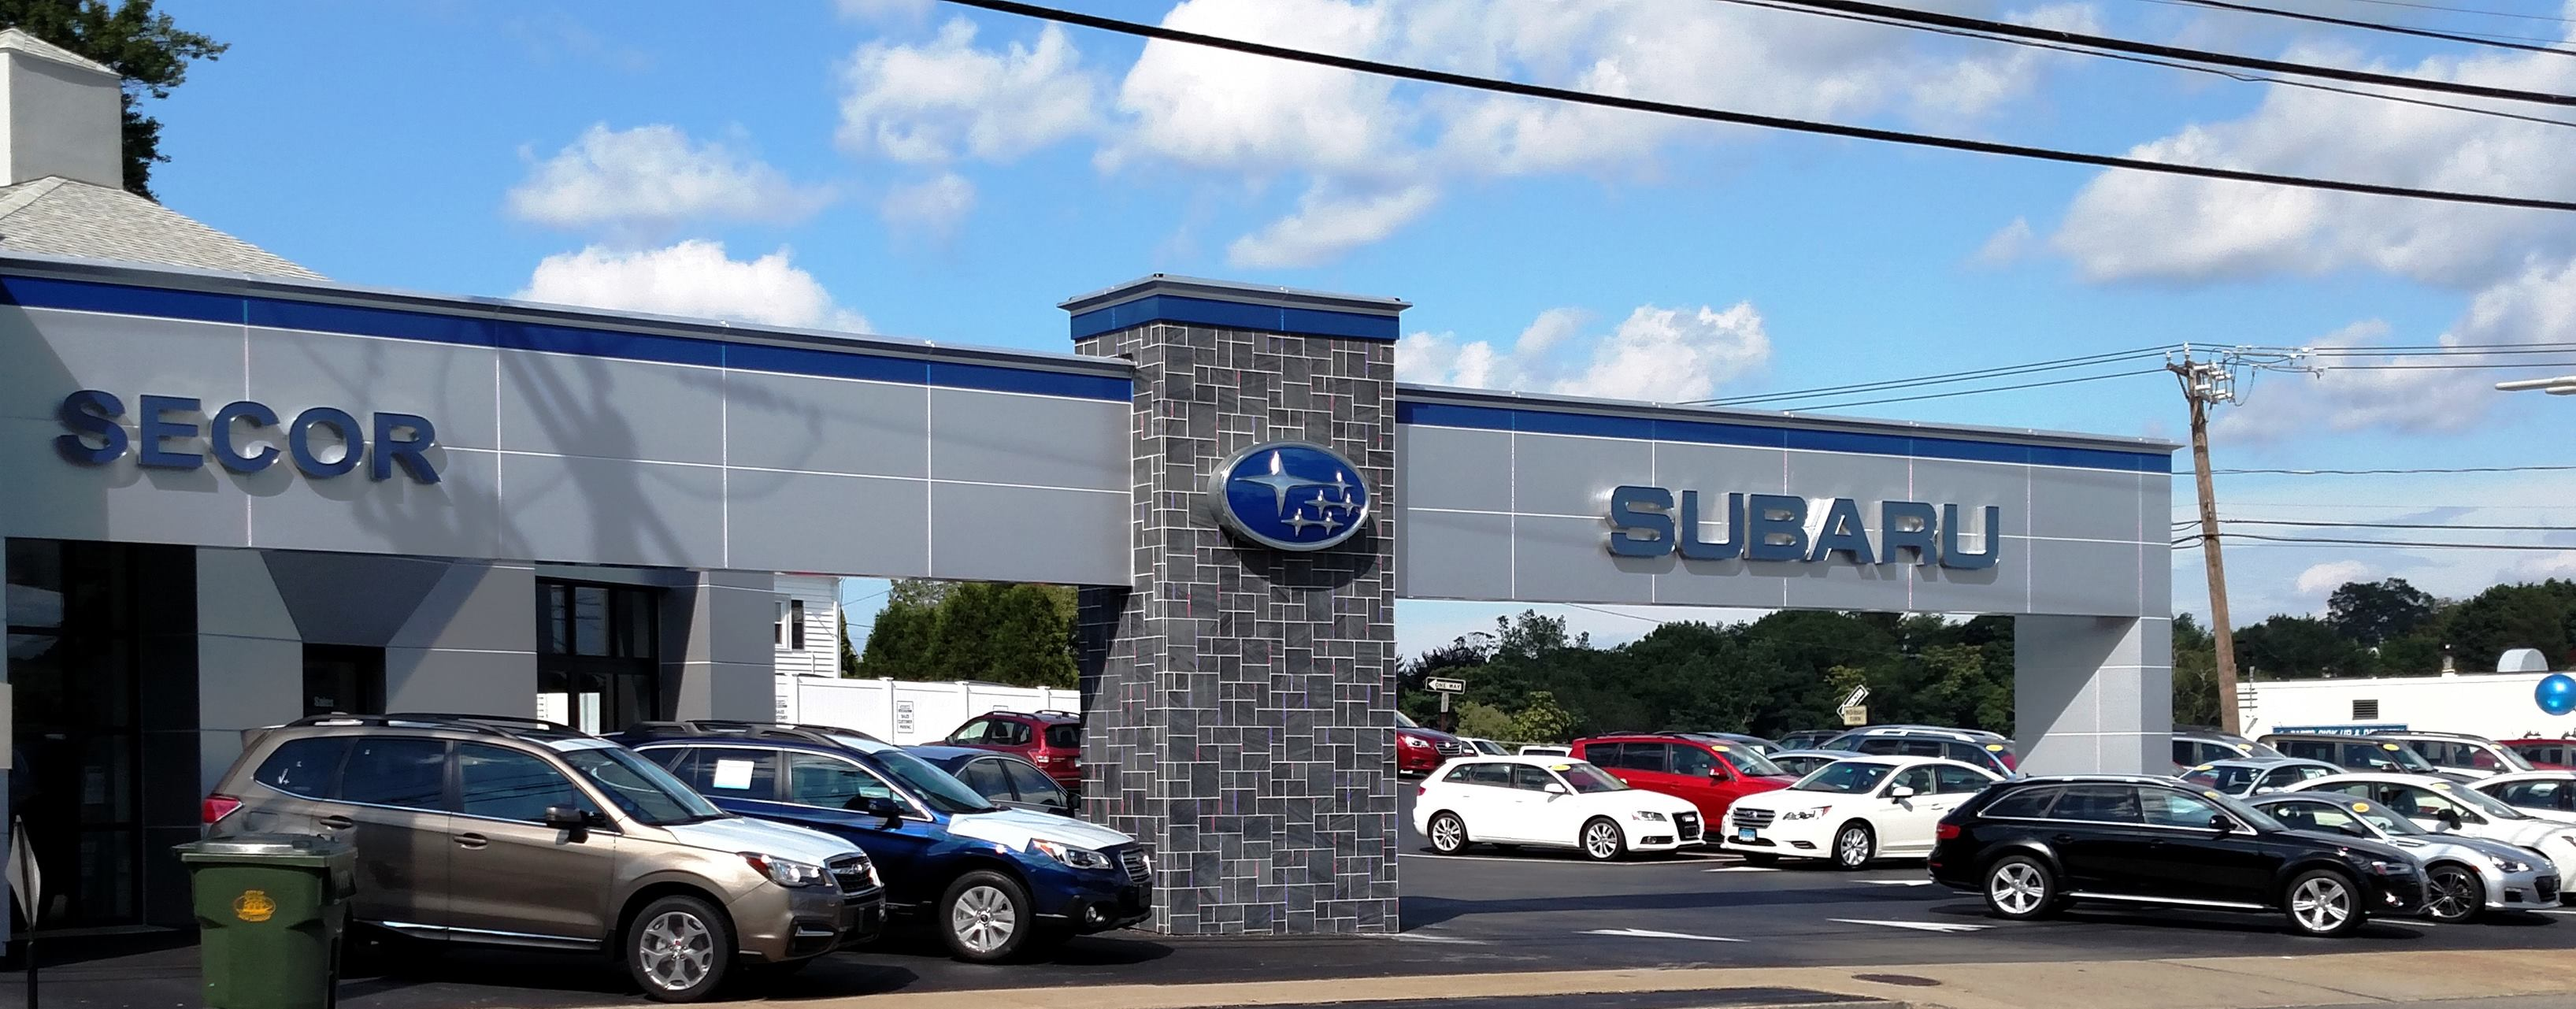 Subaru Dealers Ct >> Secor Subaru Dealership In New London Ct Subaru Cars For Sale